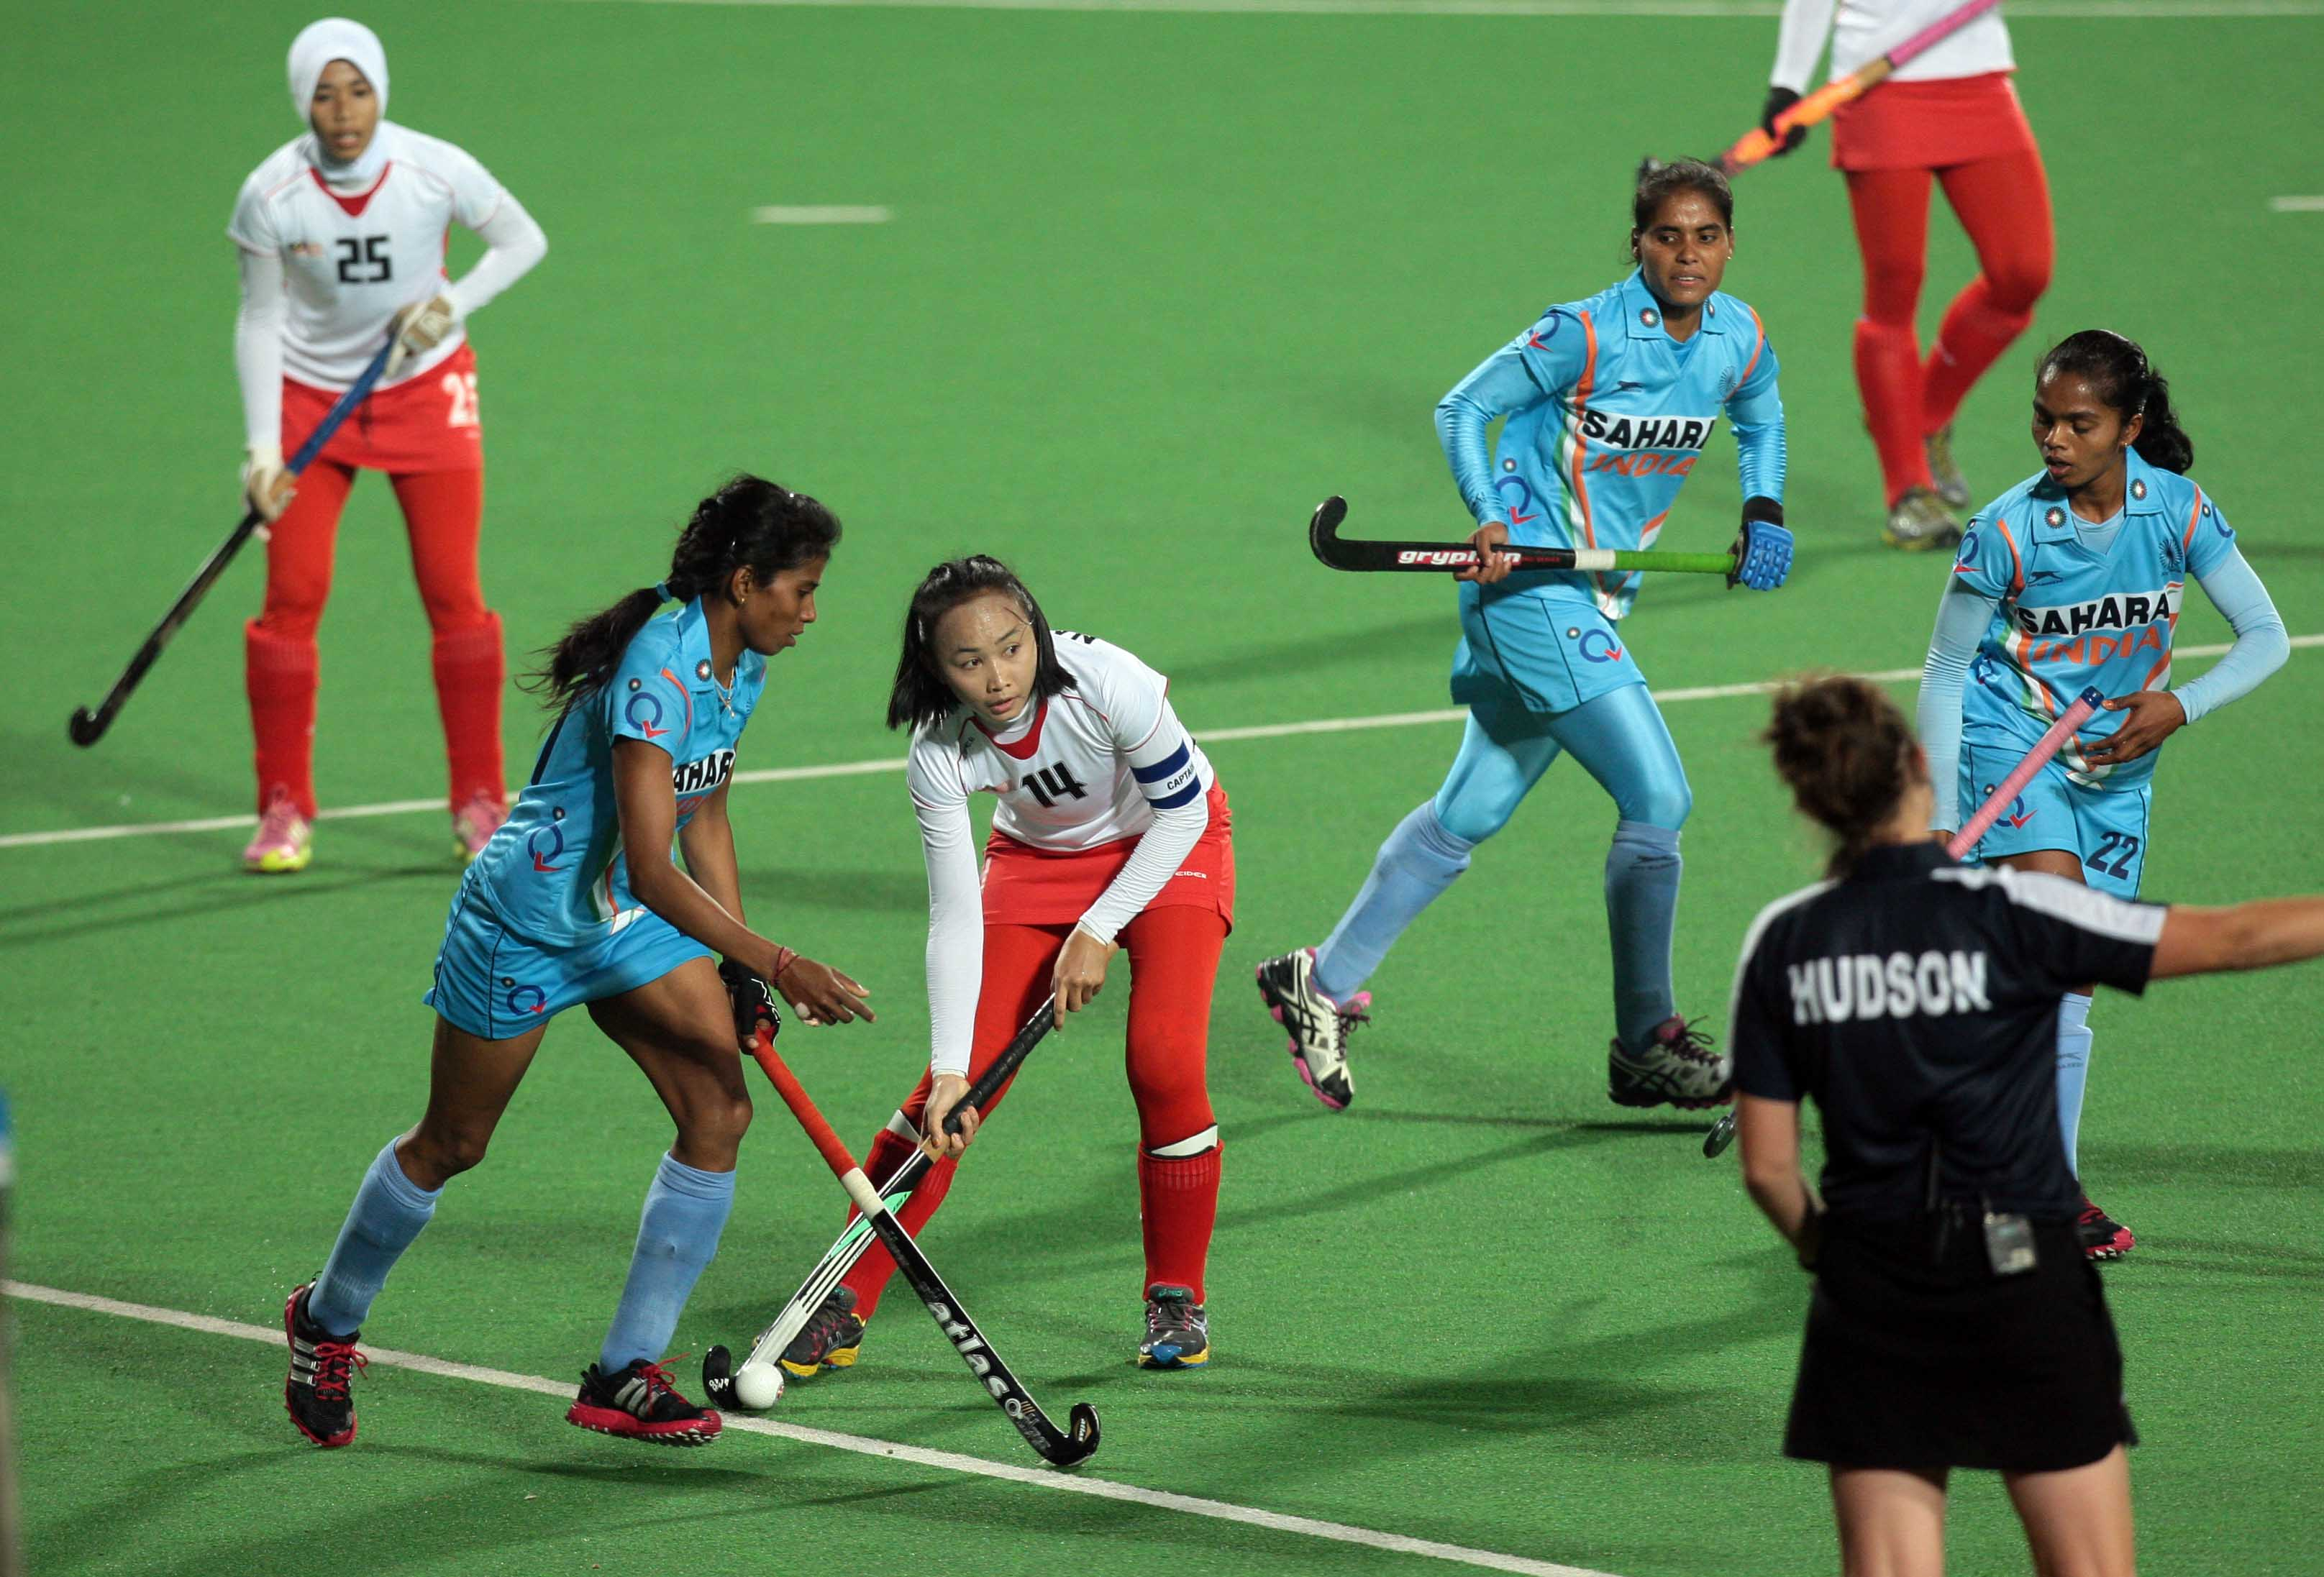 Hero-Hockey-World-League-2013-Yendala-Soundarya-of-India-in-action-against-Abdul-Rahman-Nadia-of-Malaysia-at-Delhi-on-19th-Feb-2013-1-1335220